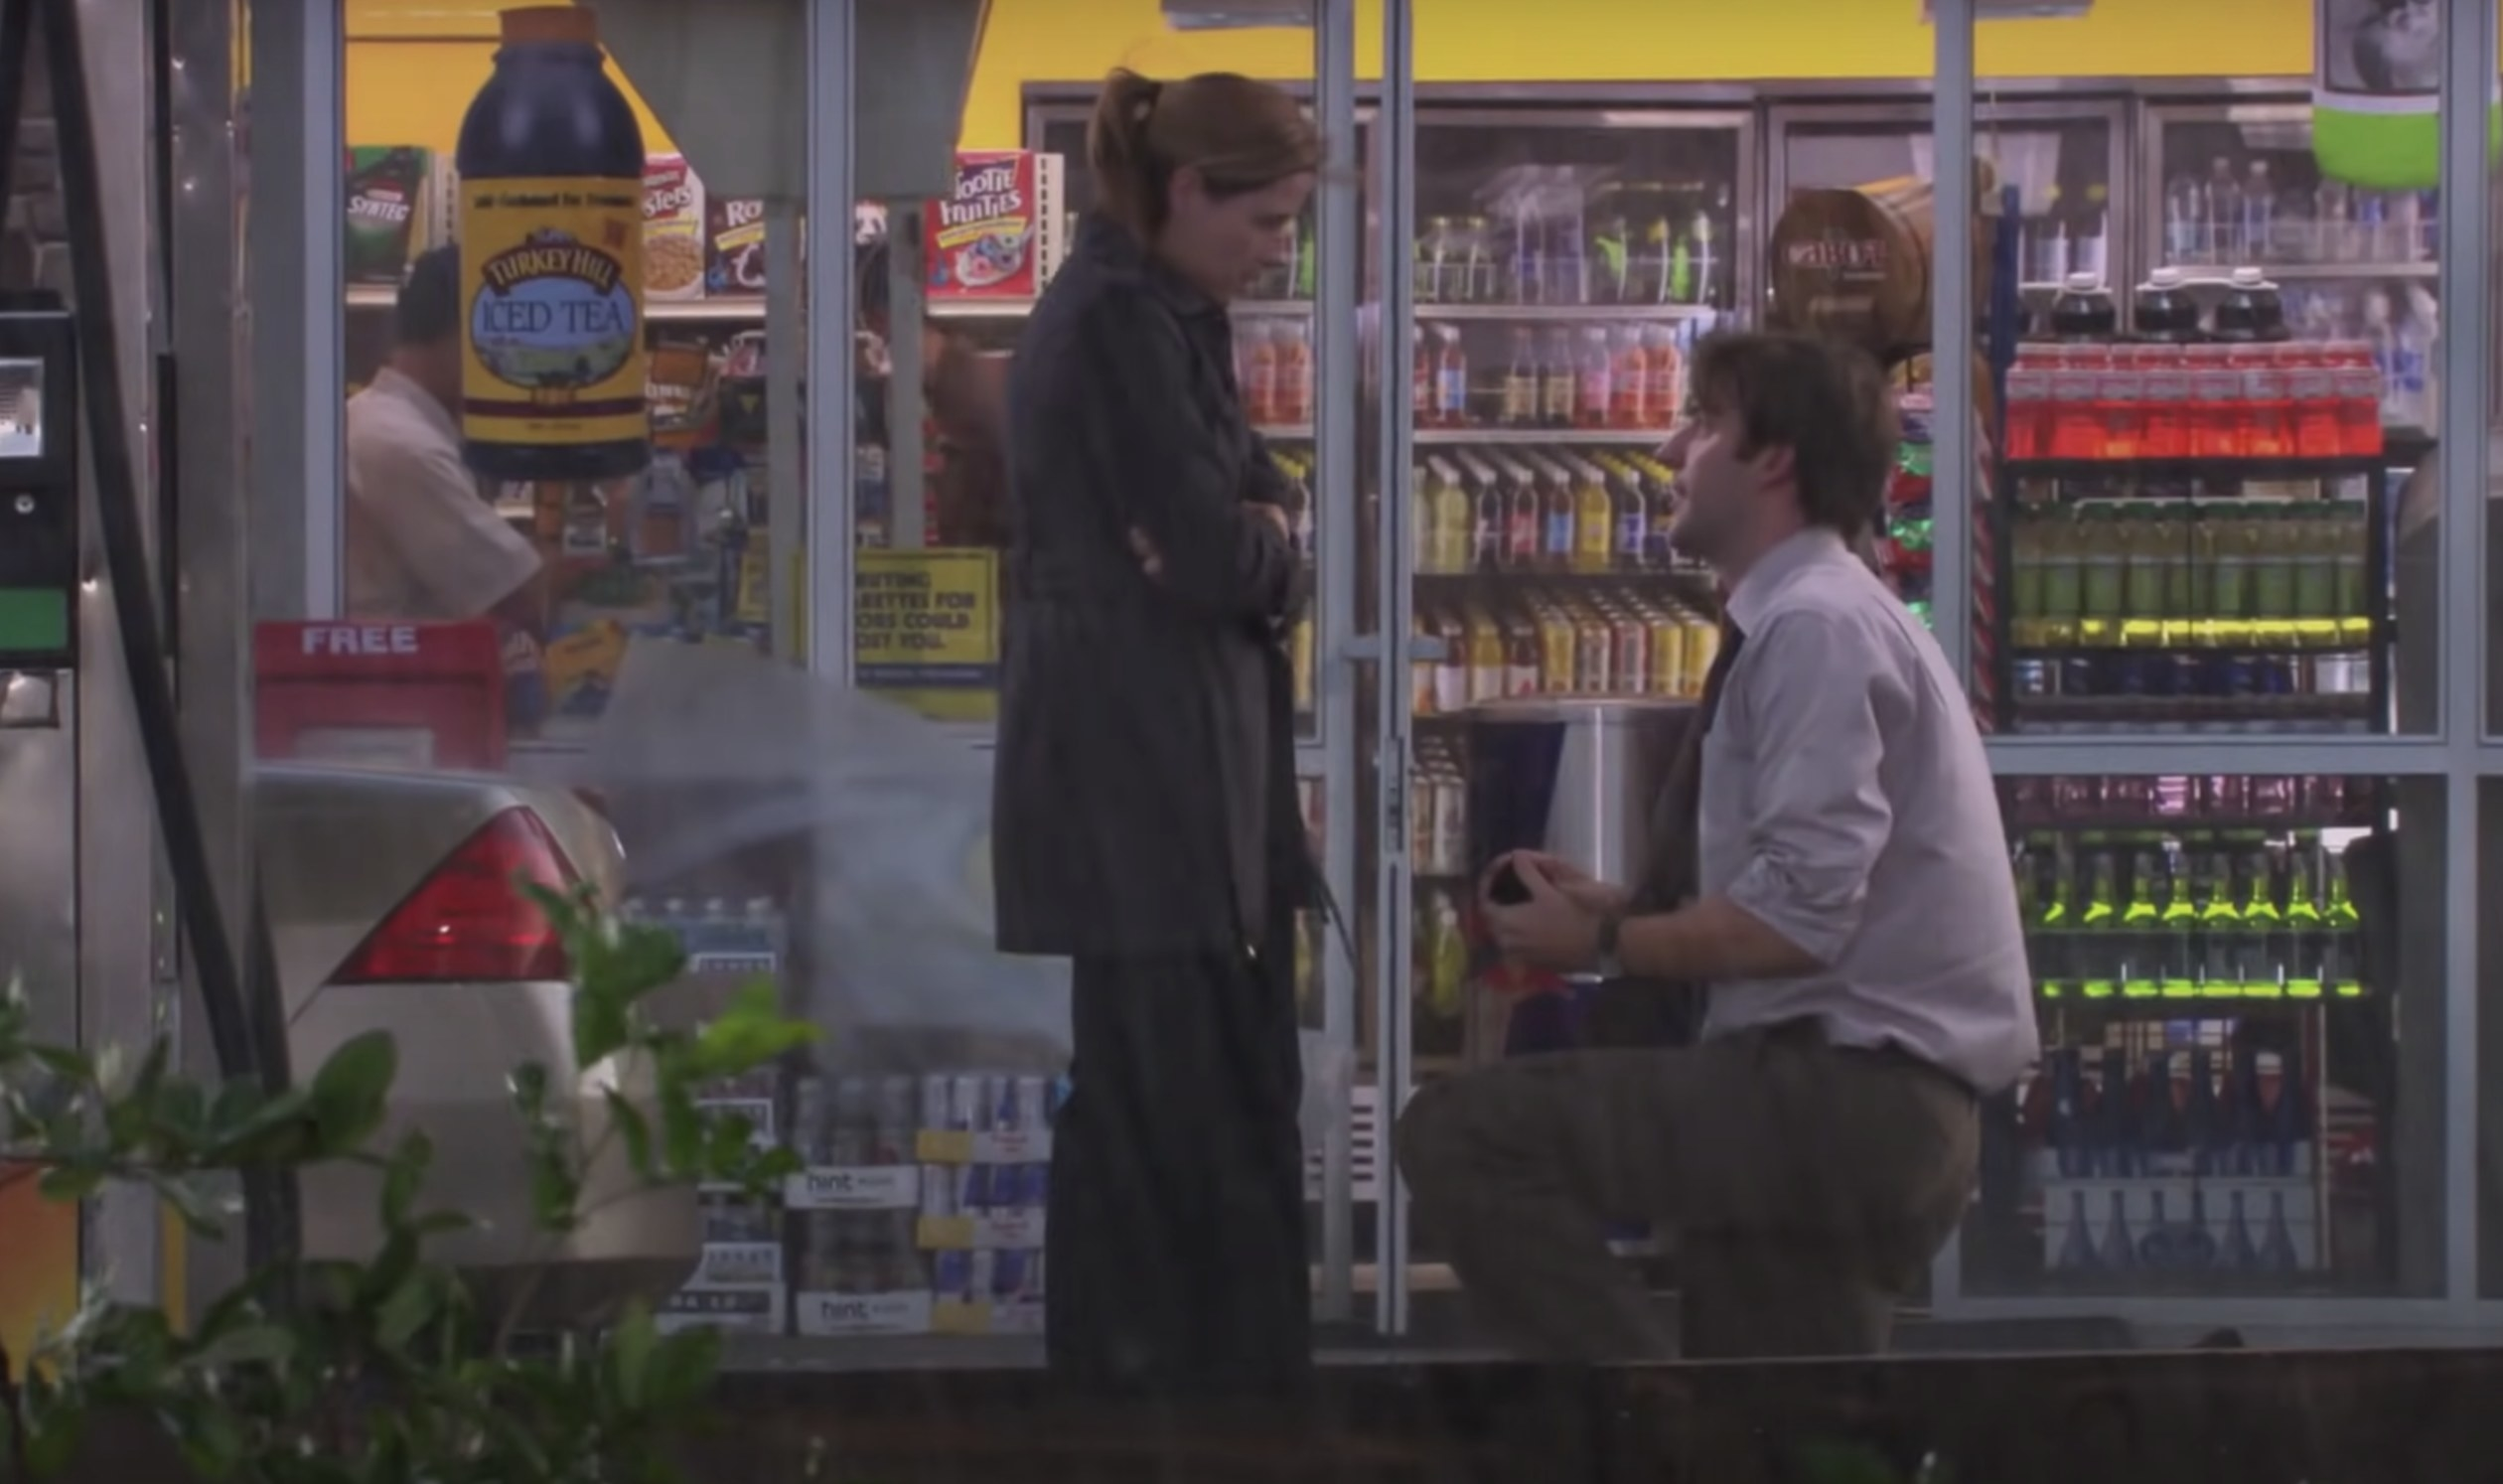 Jim gets down on one knee outside the gas station